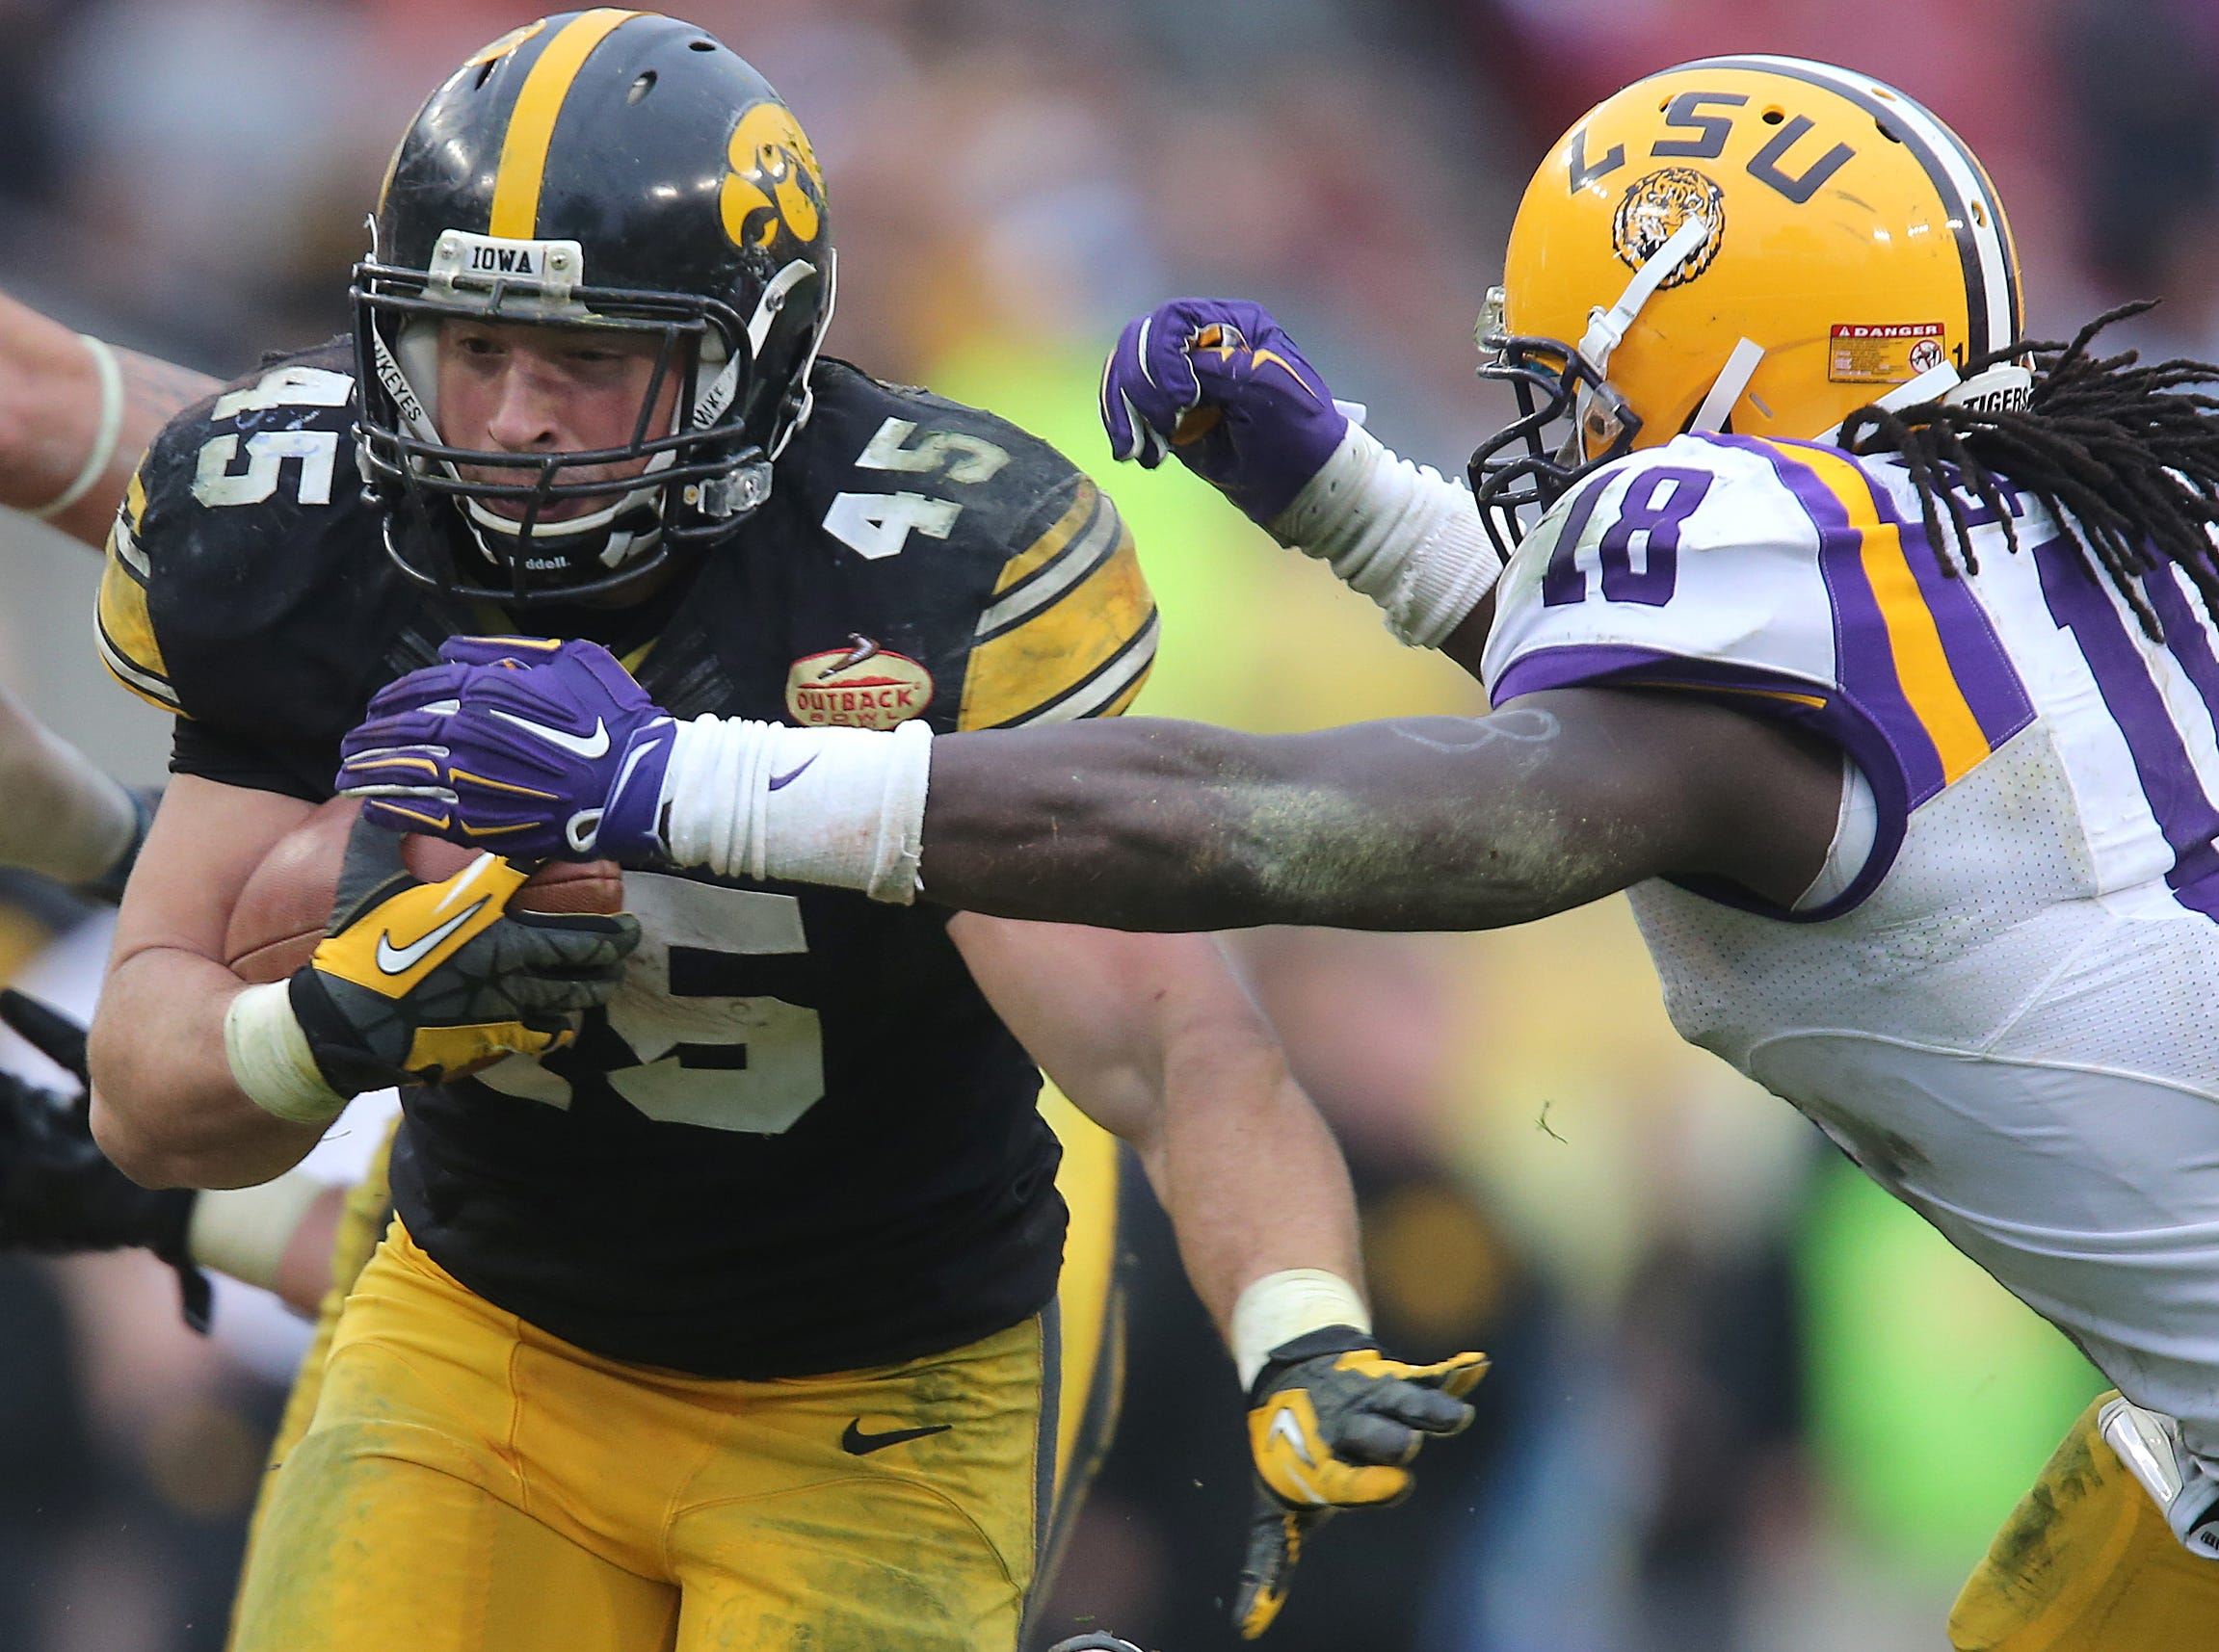 Iowa running back Mark Weisman prepares for the hit by LSU linebacker Lamin Barrow in the Outback Bowl on Wednesday, Jan. 1, 2014, in Tampa, Florida. (Bryon Houlgrave/The Register)